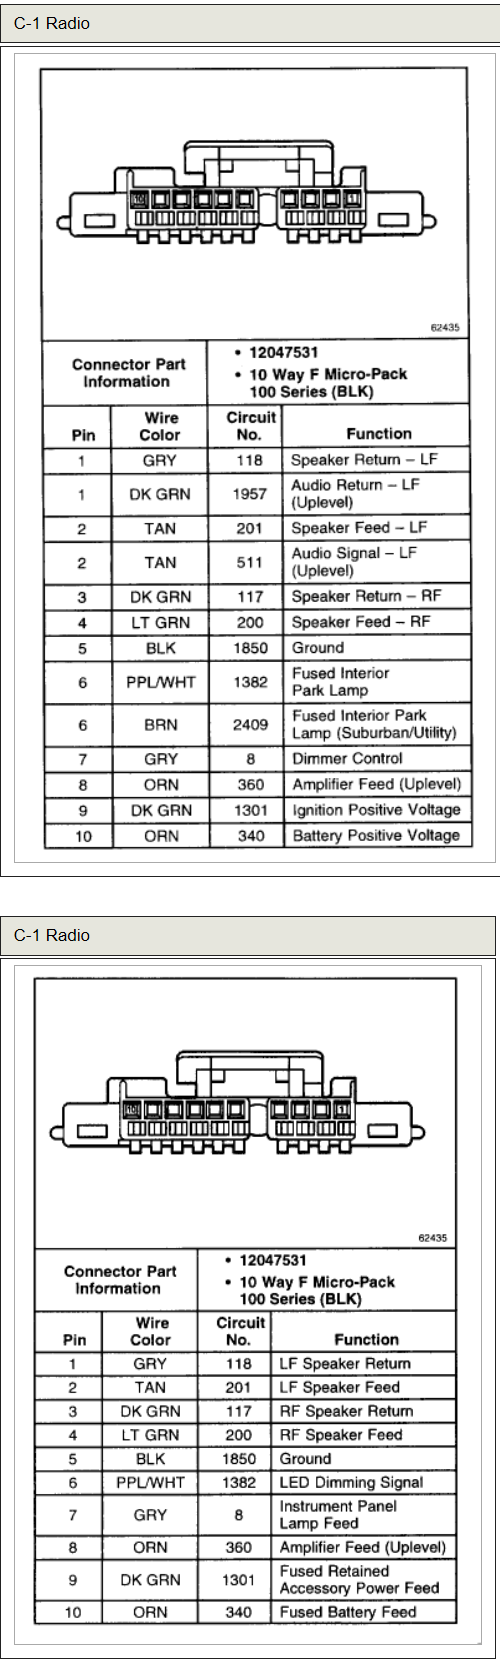 chevrolet car radio stereo audio wiring diagram autoradio connector wire  installation schematic schema esquema de conexiones anschlusskammern  konektor  schematics diagrams, car radio wiring diagram, freeware software